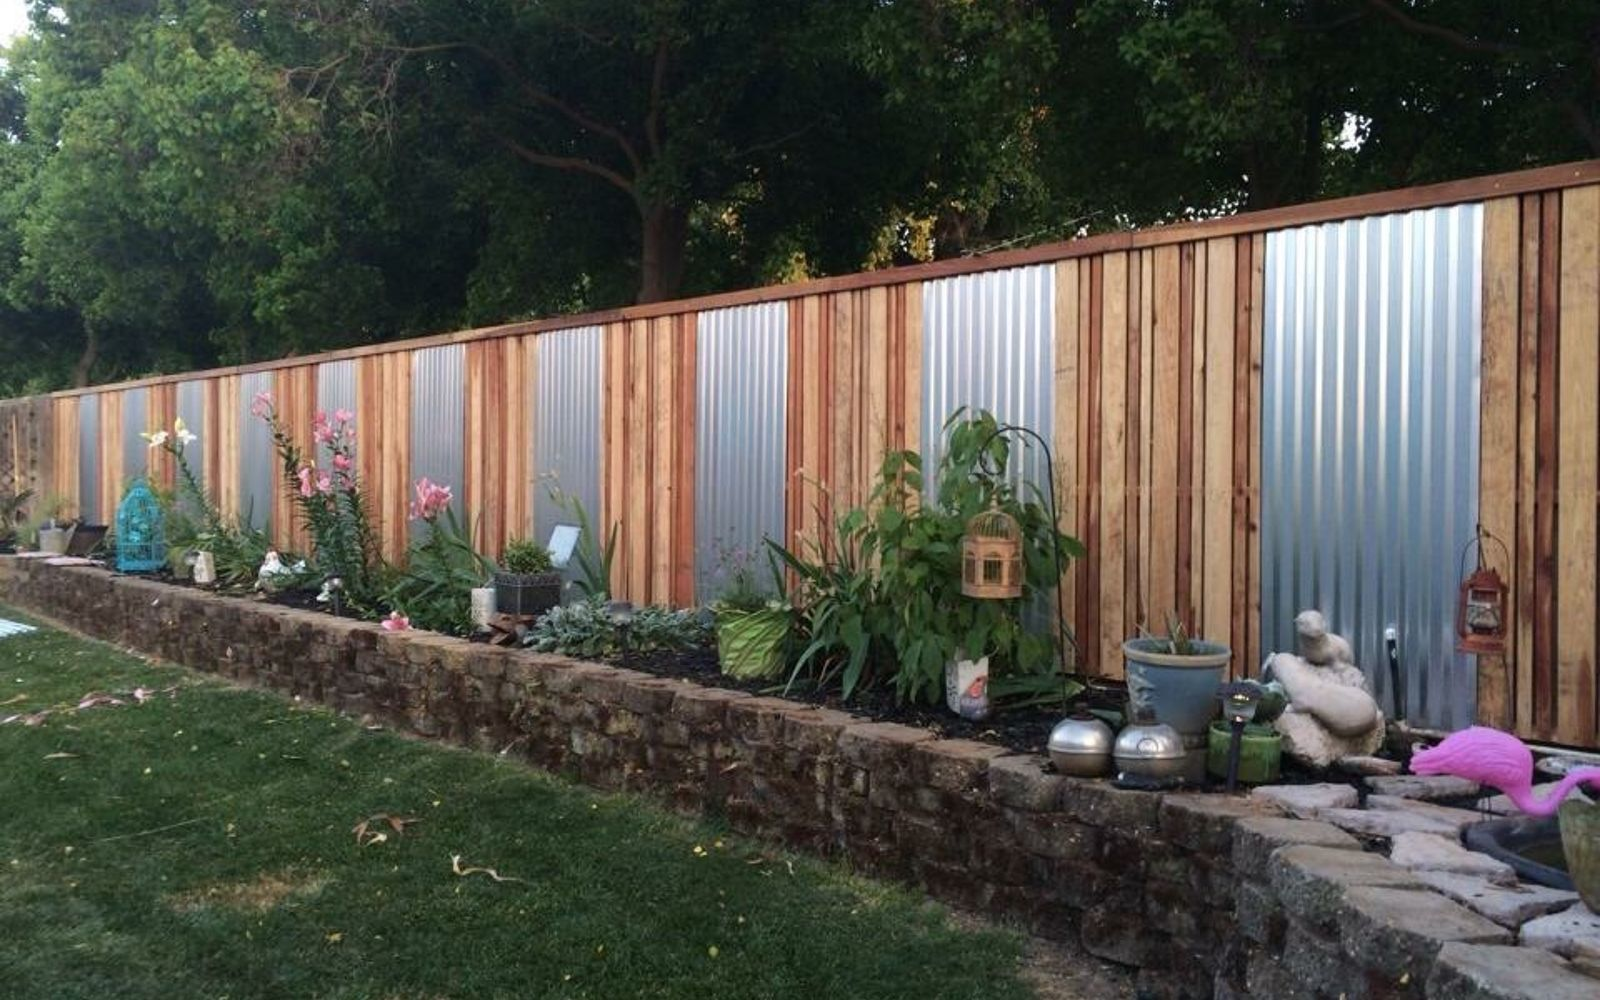 s 15 privacy fences that will turn your yard into a secluded oasis, curb appeal, fences, Accent an ordinary fence with sheet metal